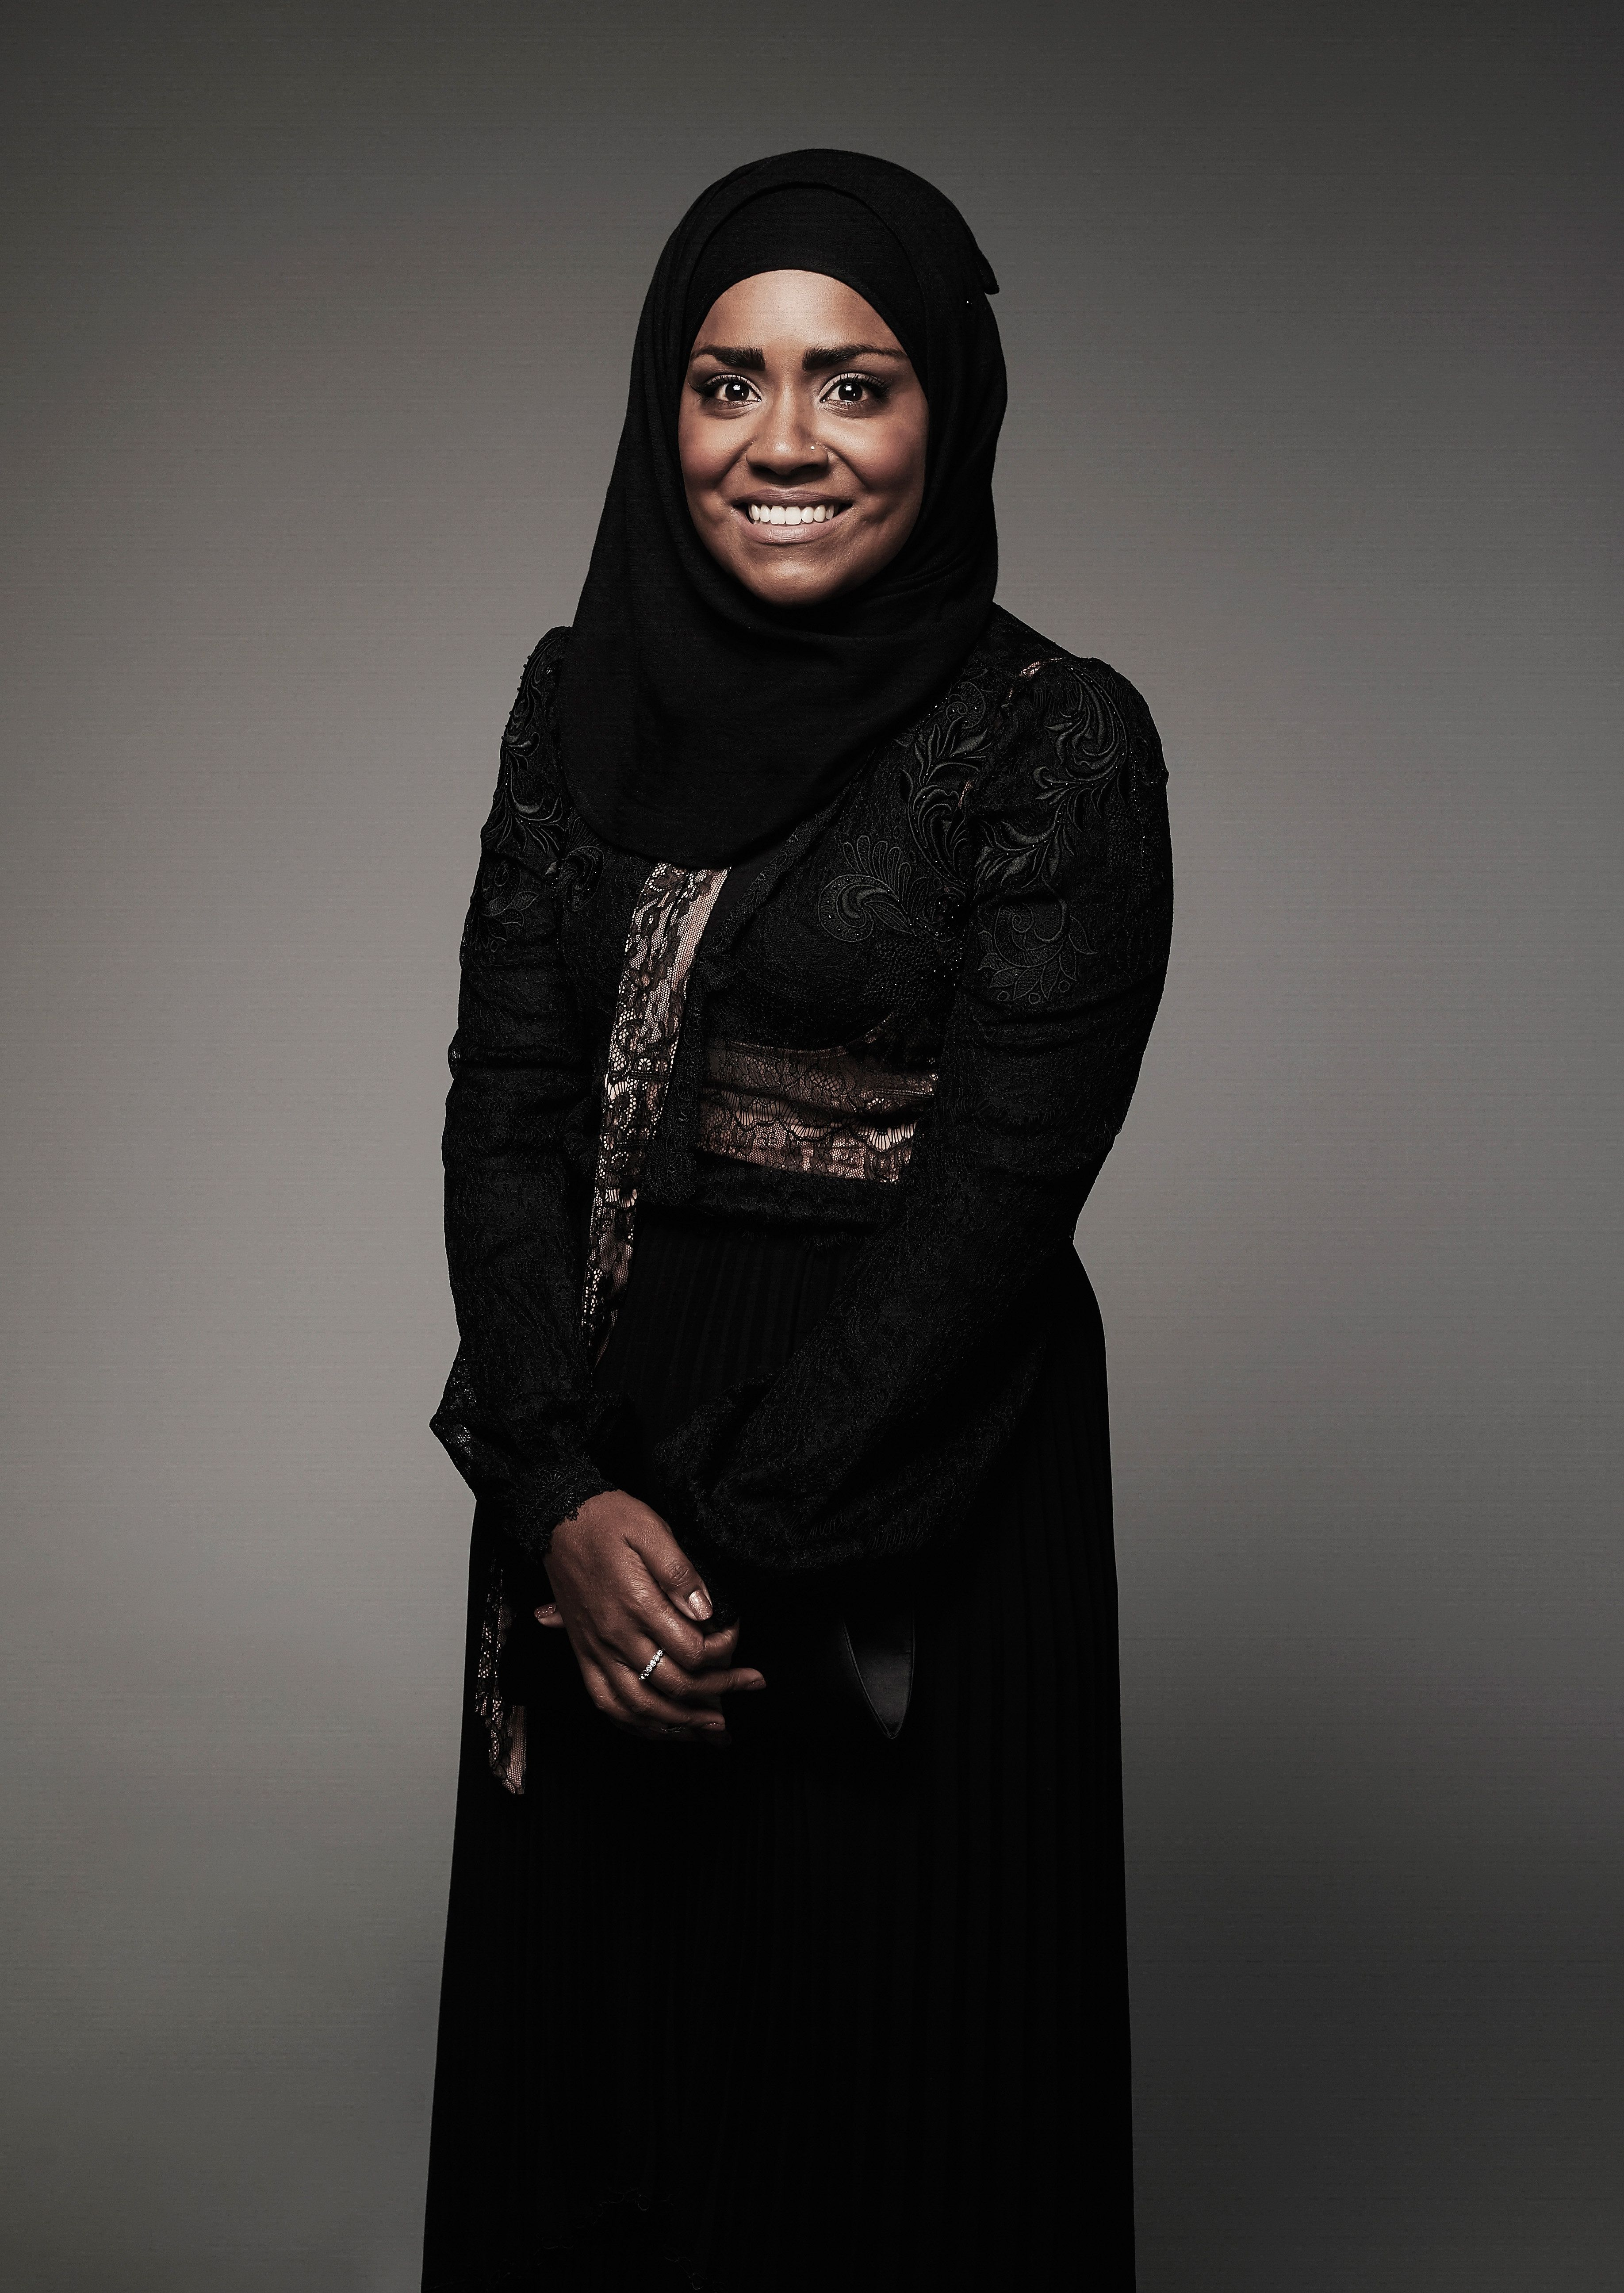 'The Great British Bake Off' Winner Nadiya Hussain Lands Own Food Show, 'The Chronicles Of